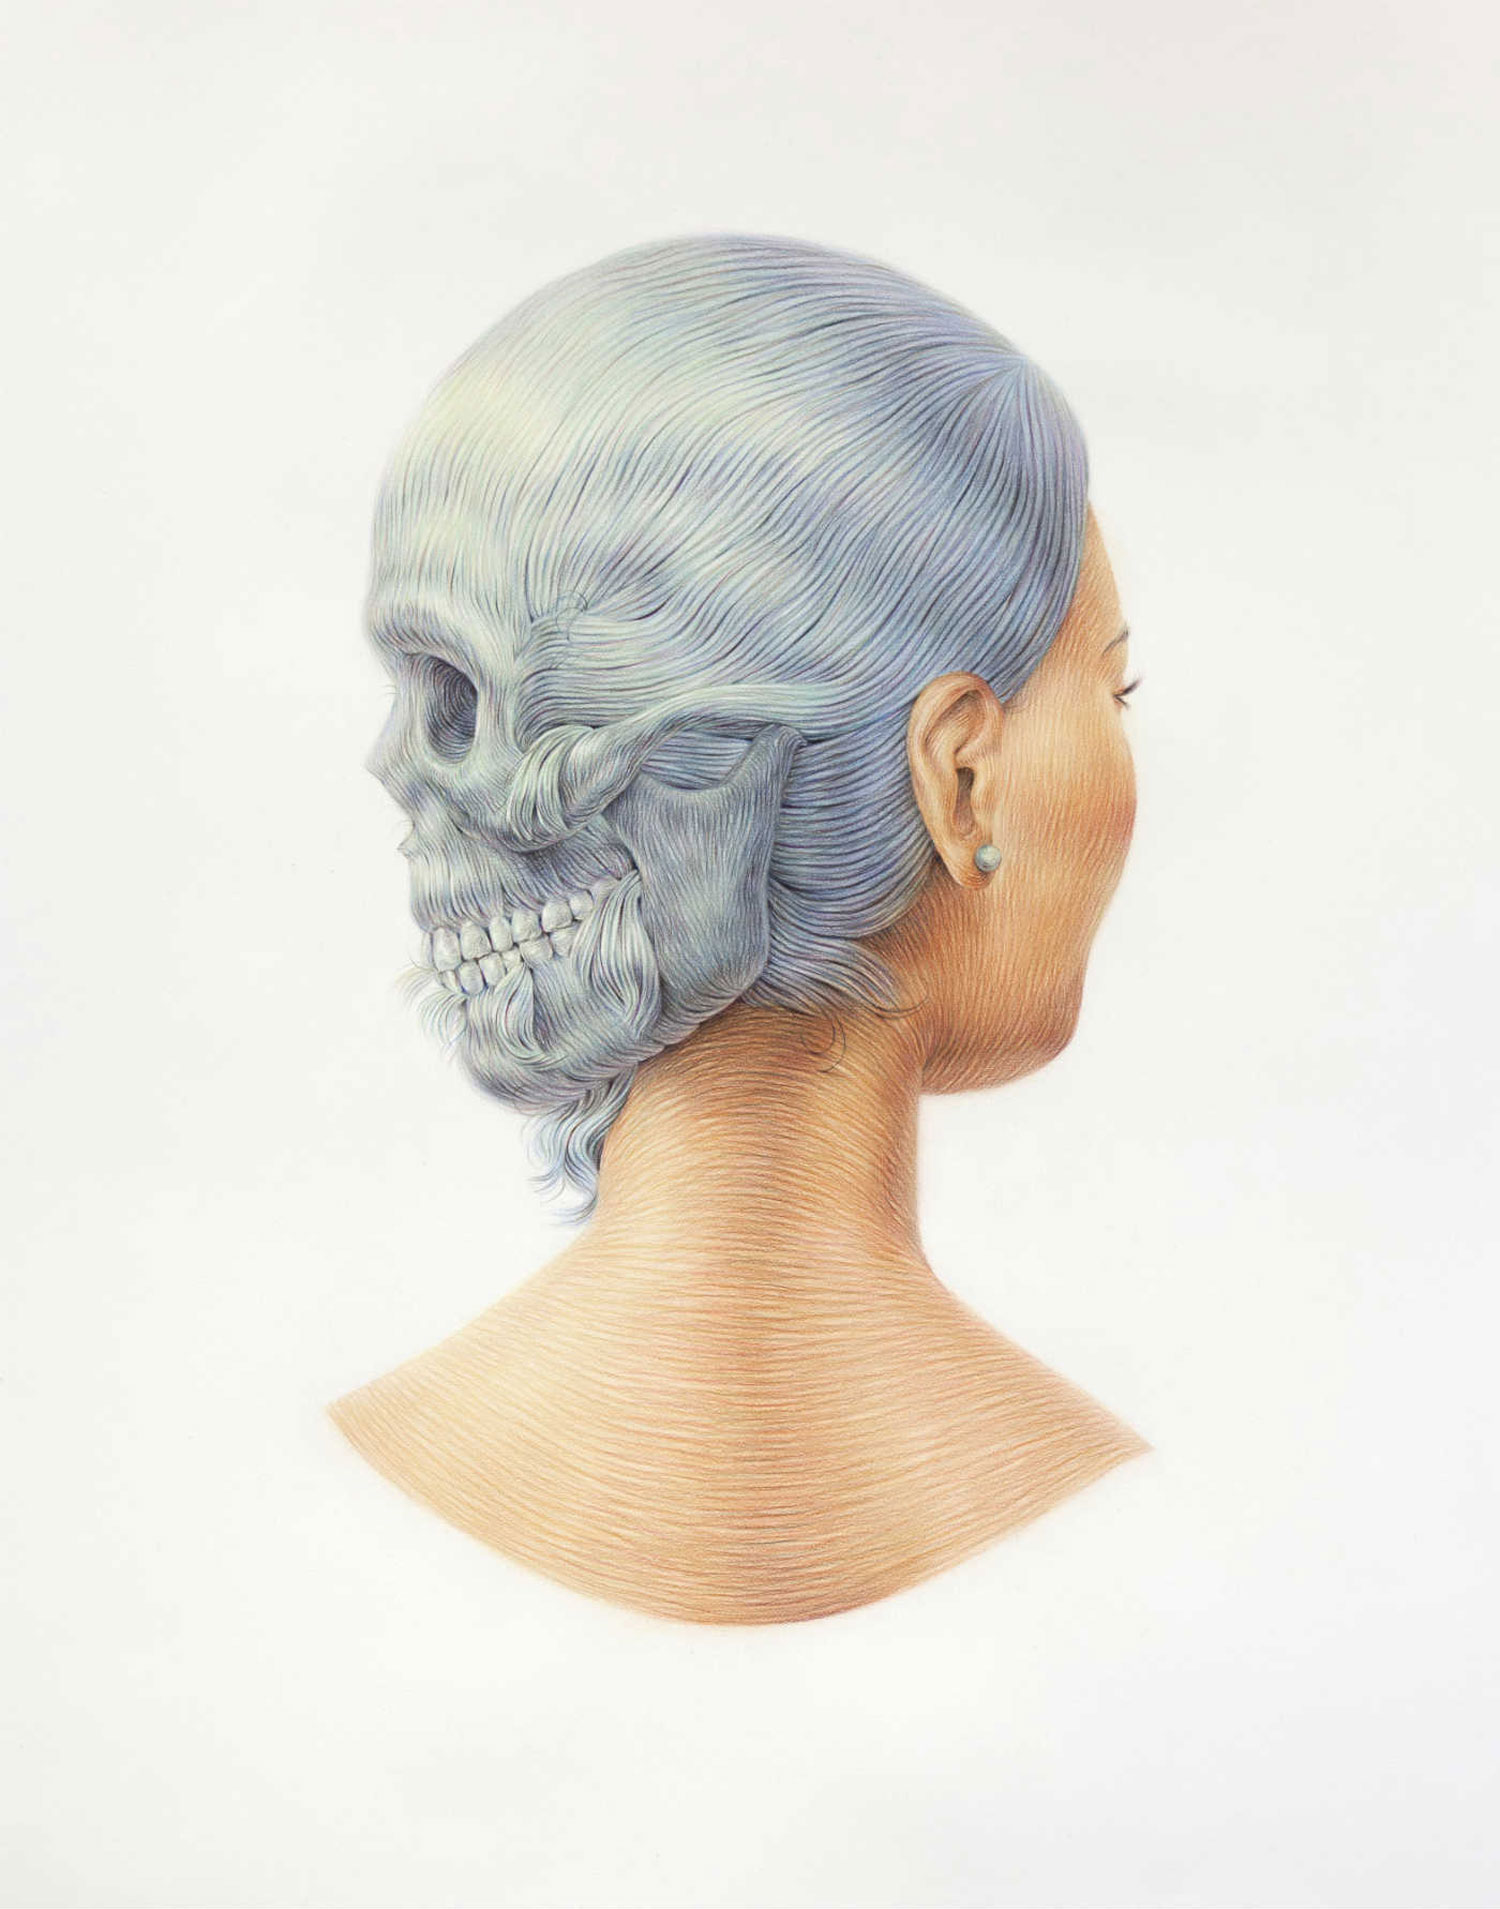 winnie truong moulded hair illustration back and side of head skull